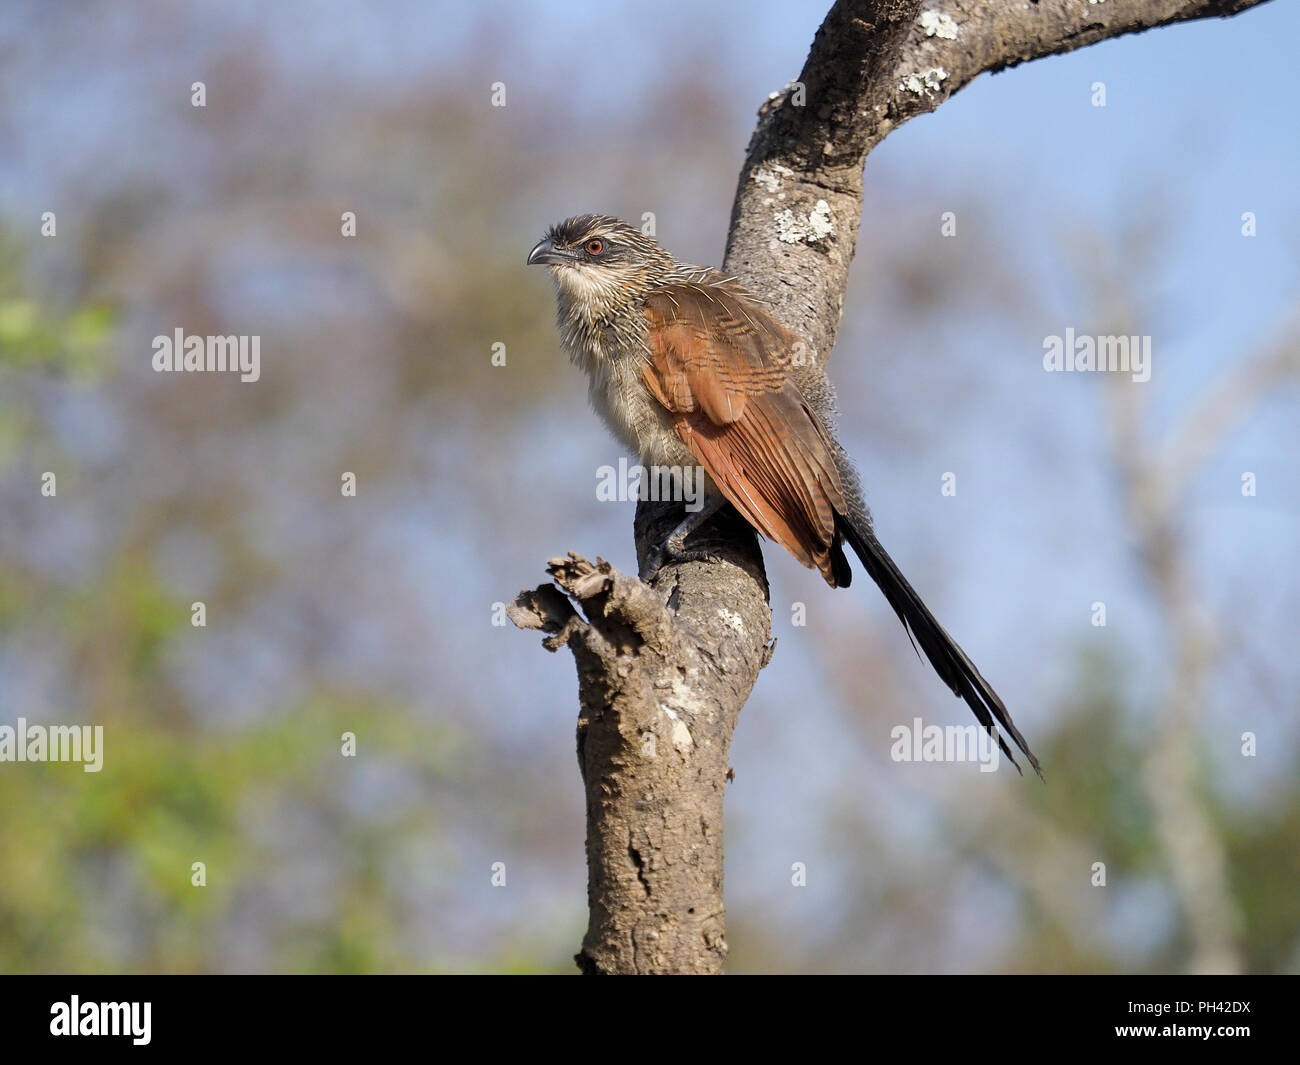 White-browed coucal, Centropus superciliosus, Single bird on branch, Uganda, August 2018 - Stock Image